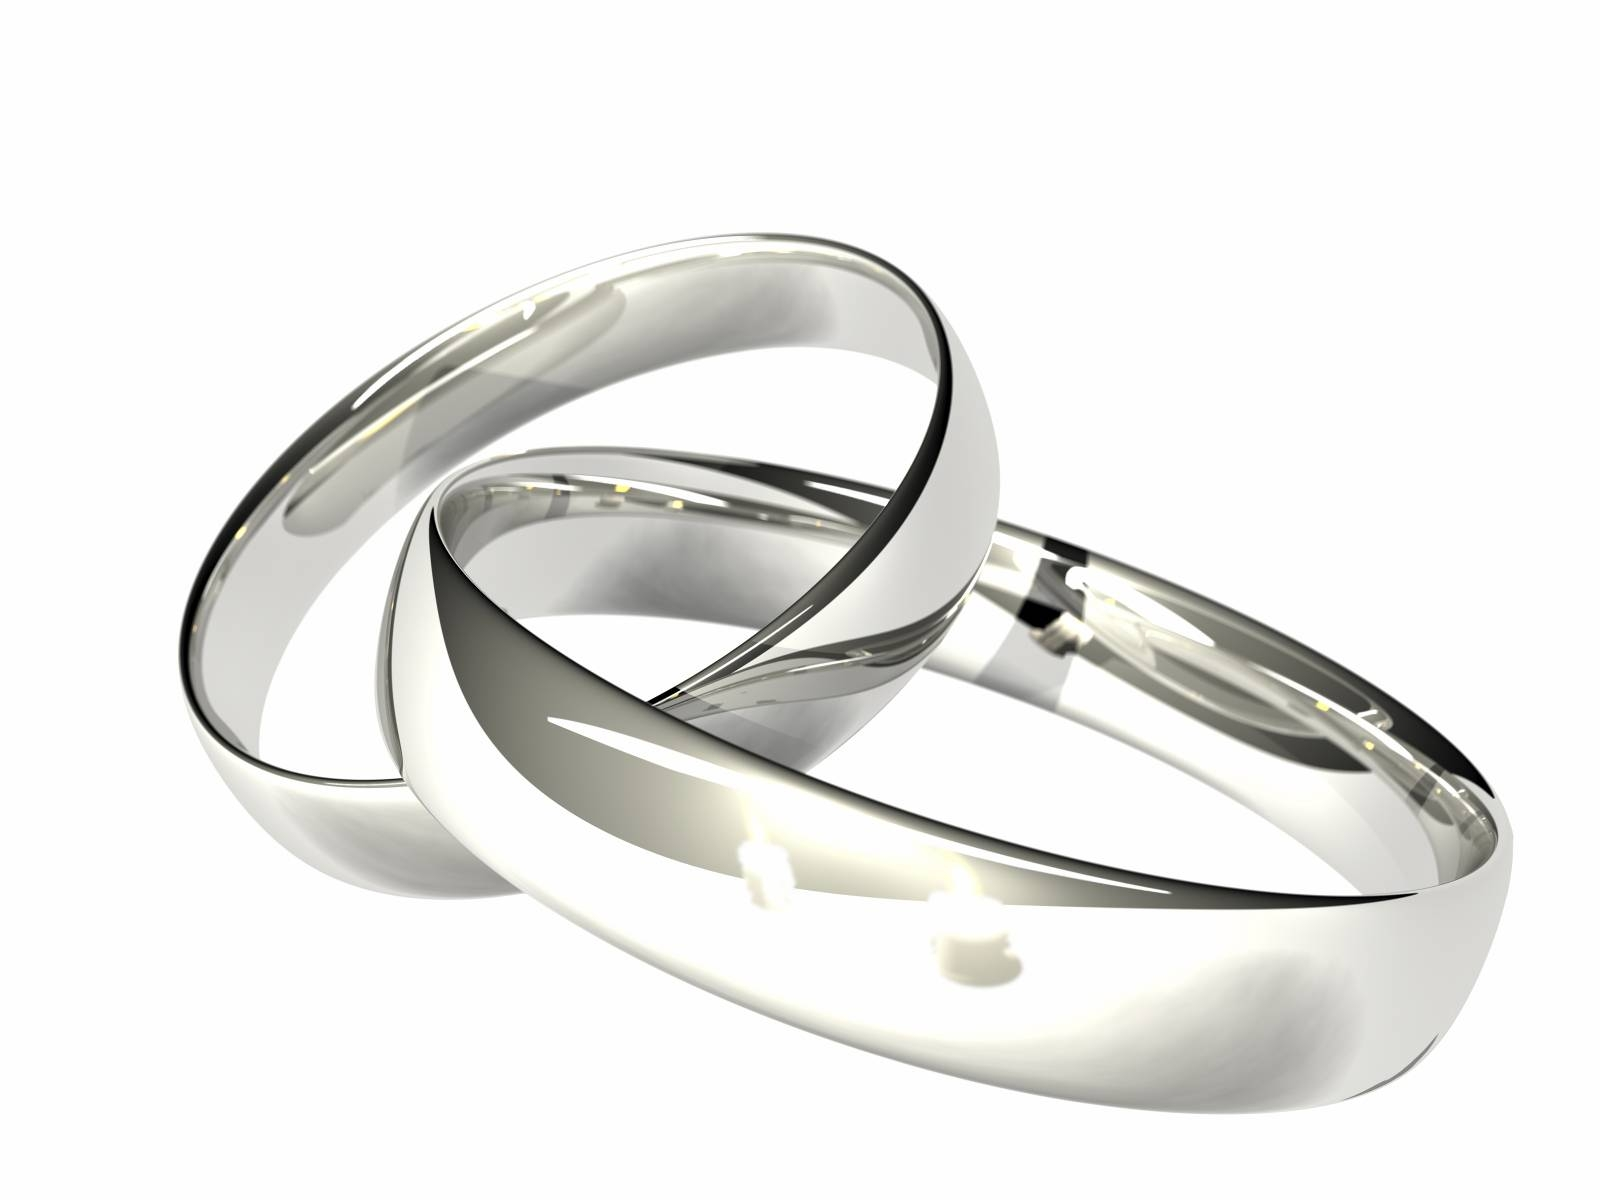 Wedding Rings : Black Wedding Ring Clipart Wedding Rings Clipart Intended For Intertwined Wedding Bands (View 15 of 15)